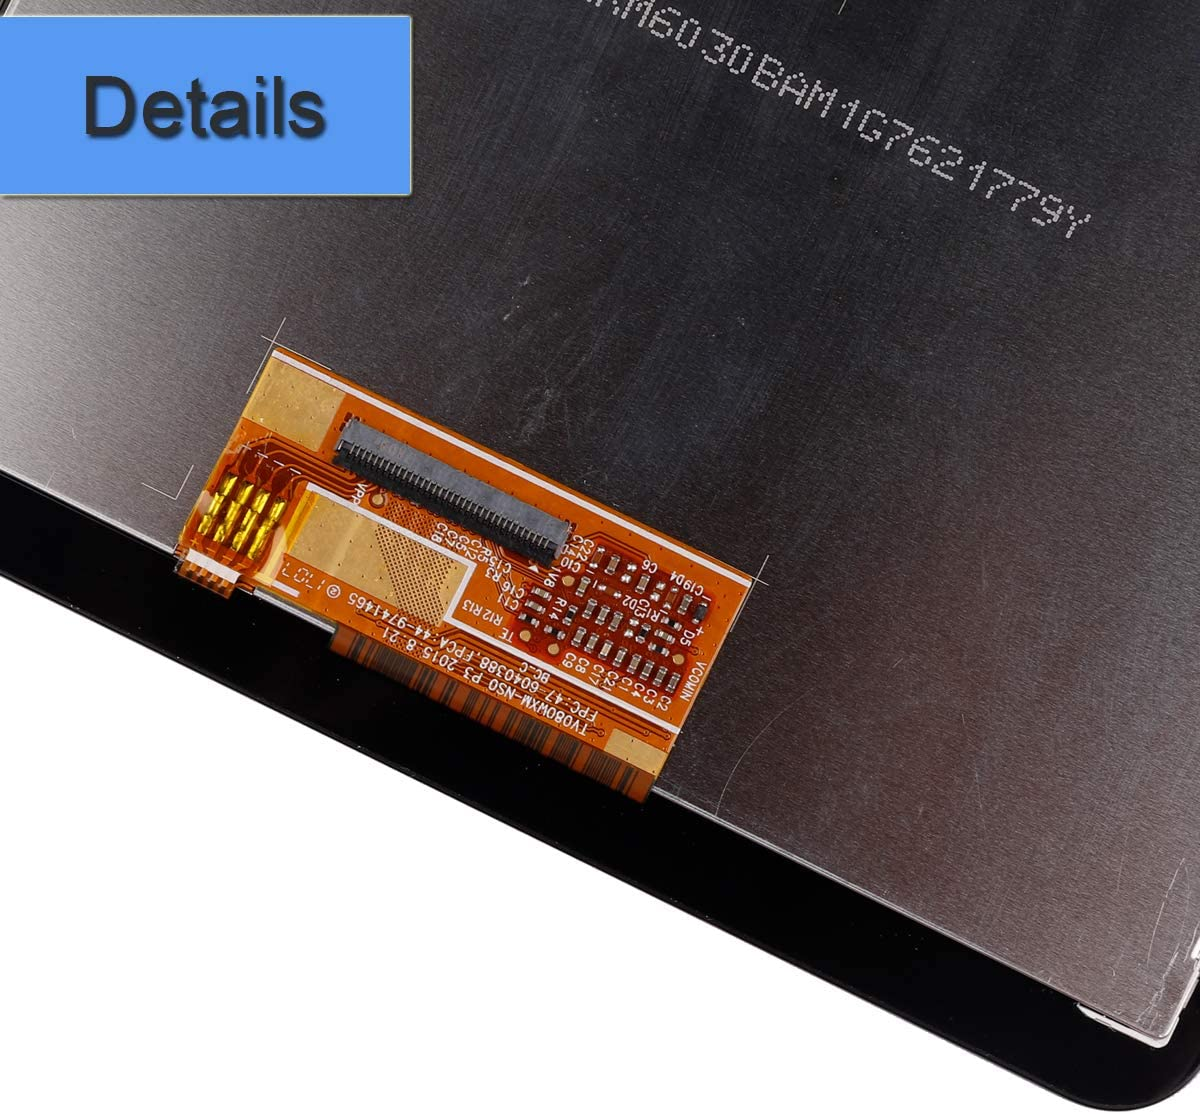 New Replacement LCD Screen Compatible with Samsung Galaxy Tab A 8.0 2018 SM-T387A SM-T387 T387T LCD Touch Screen Display Assembly with Tools